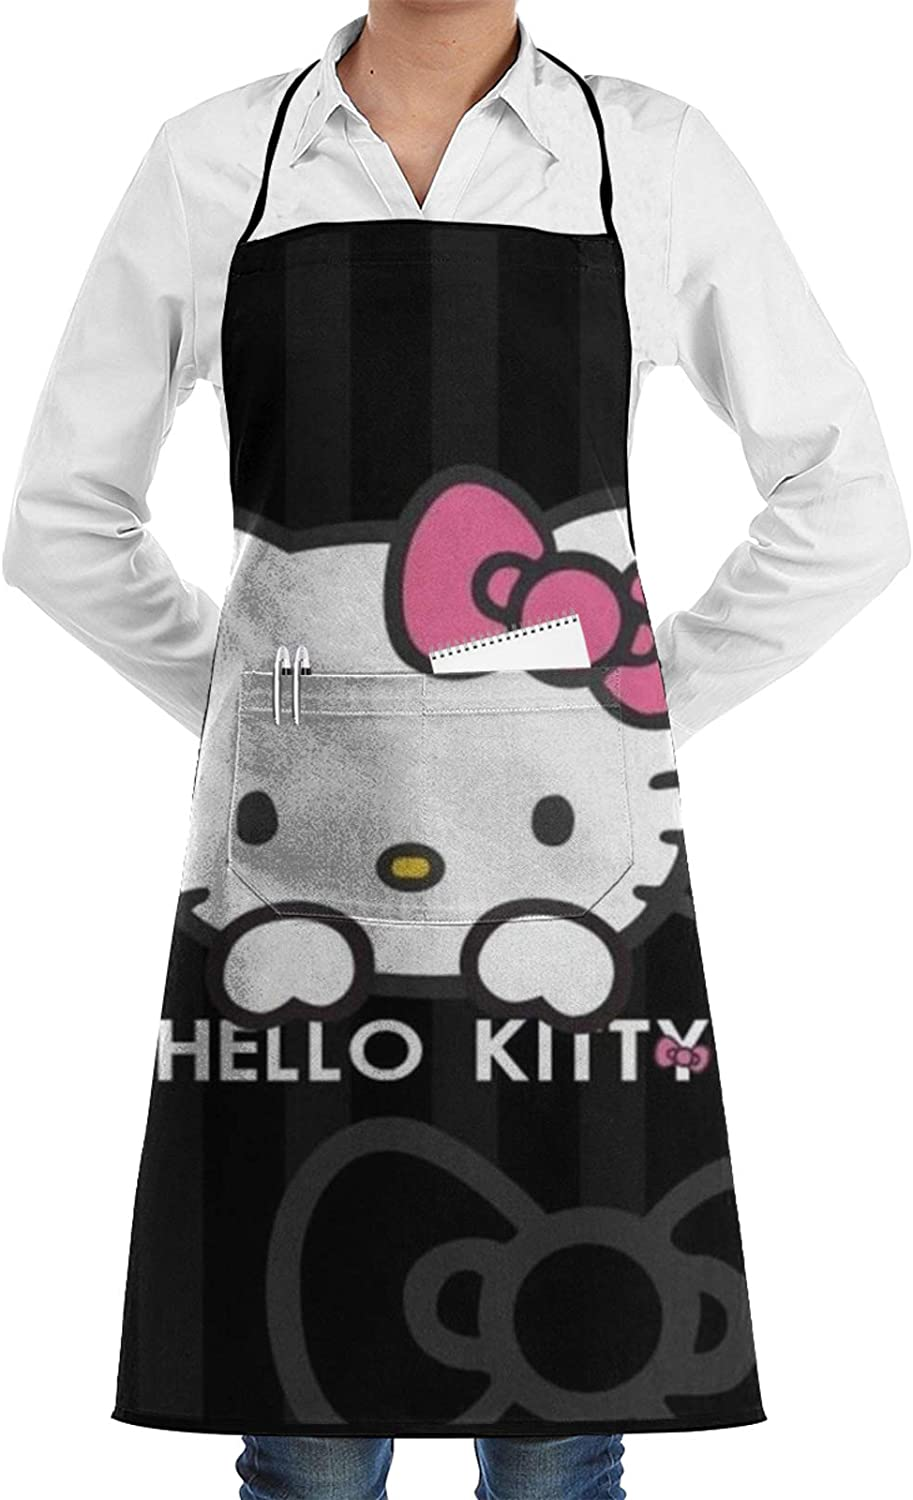 RGFK Hello Kitty Bib Aprons,Water Oil Stain Resistant Washable with Pockets Cooking Apron for Thanksgiving Christmas Cooking Baking